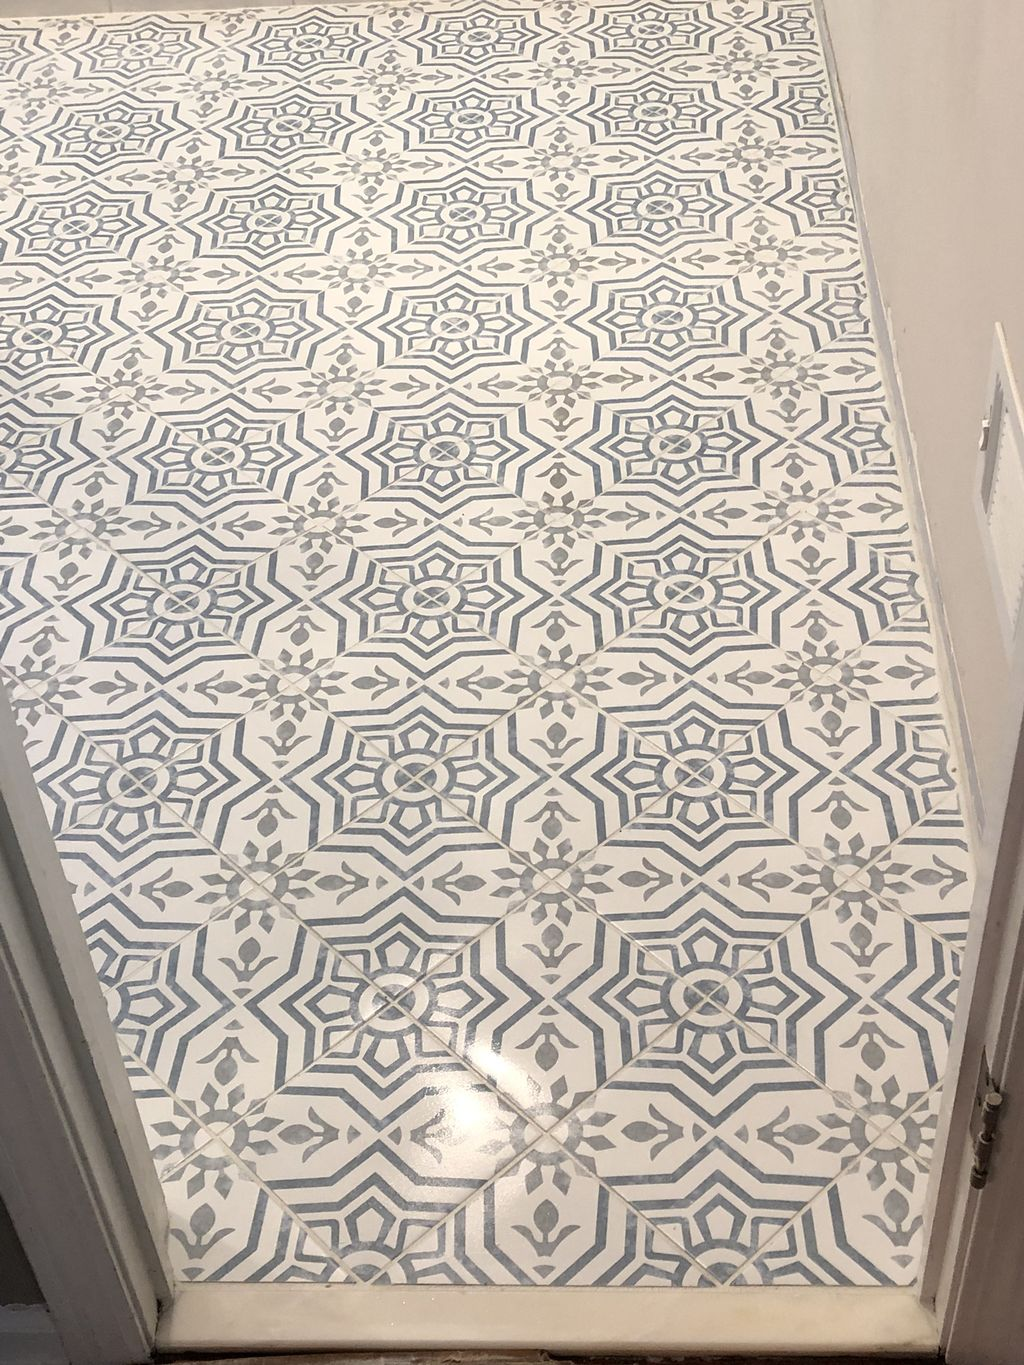 Mosaic Tile Floors and Wall